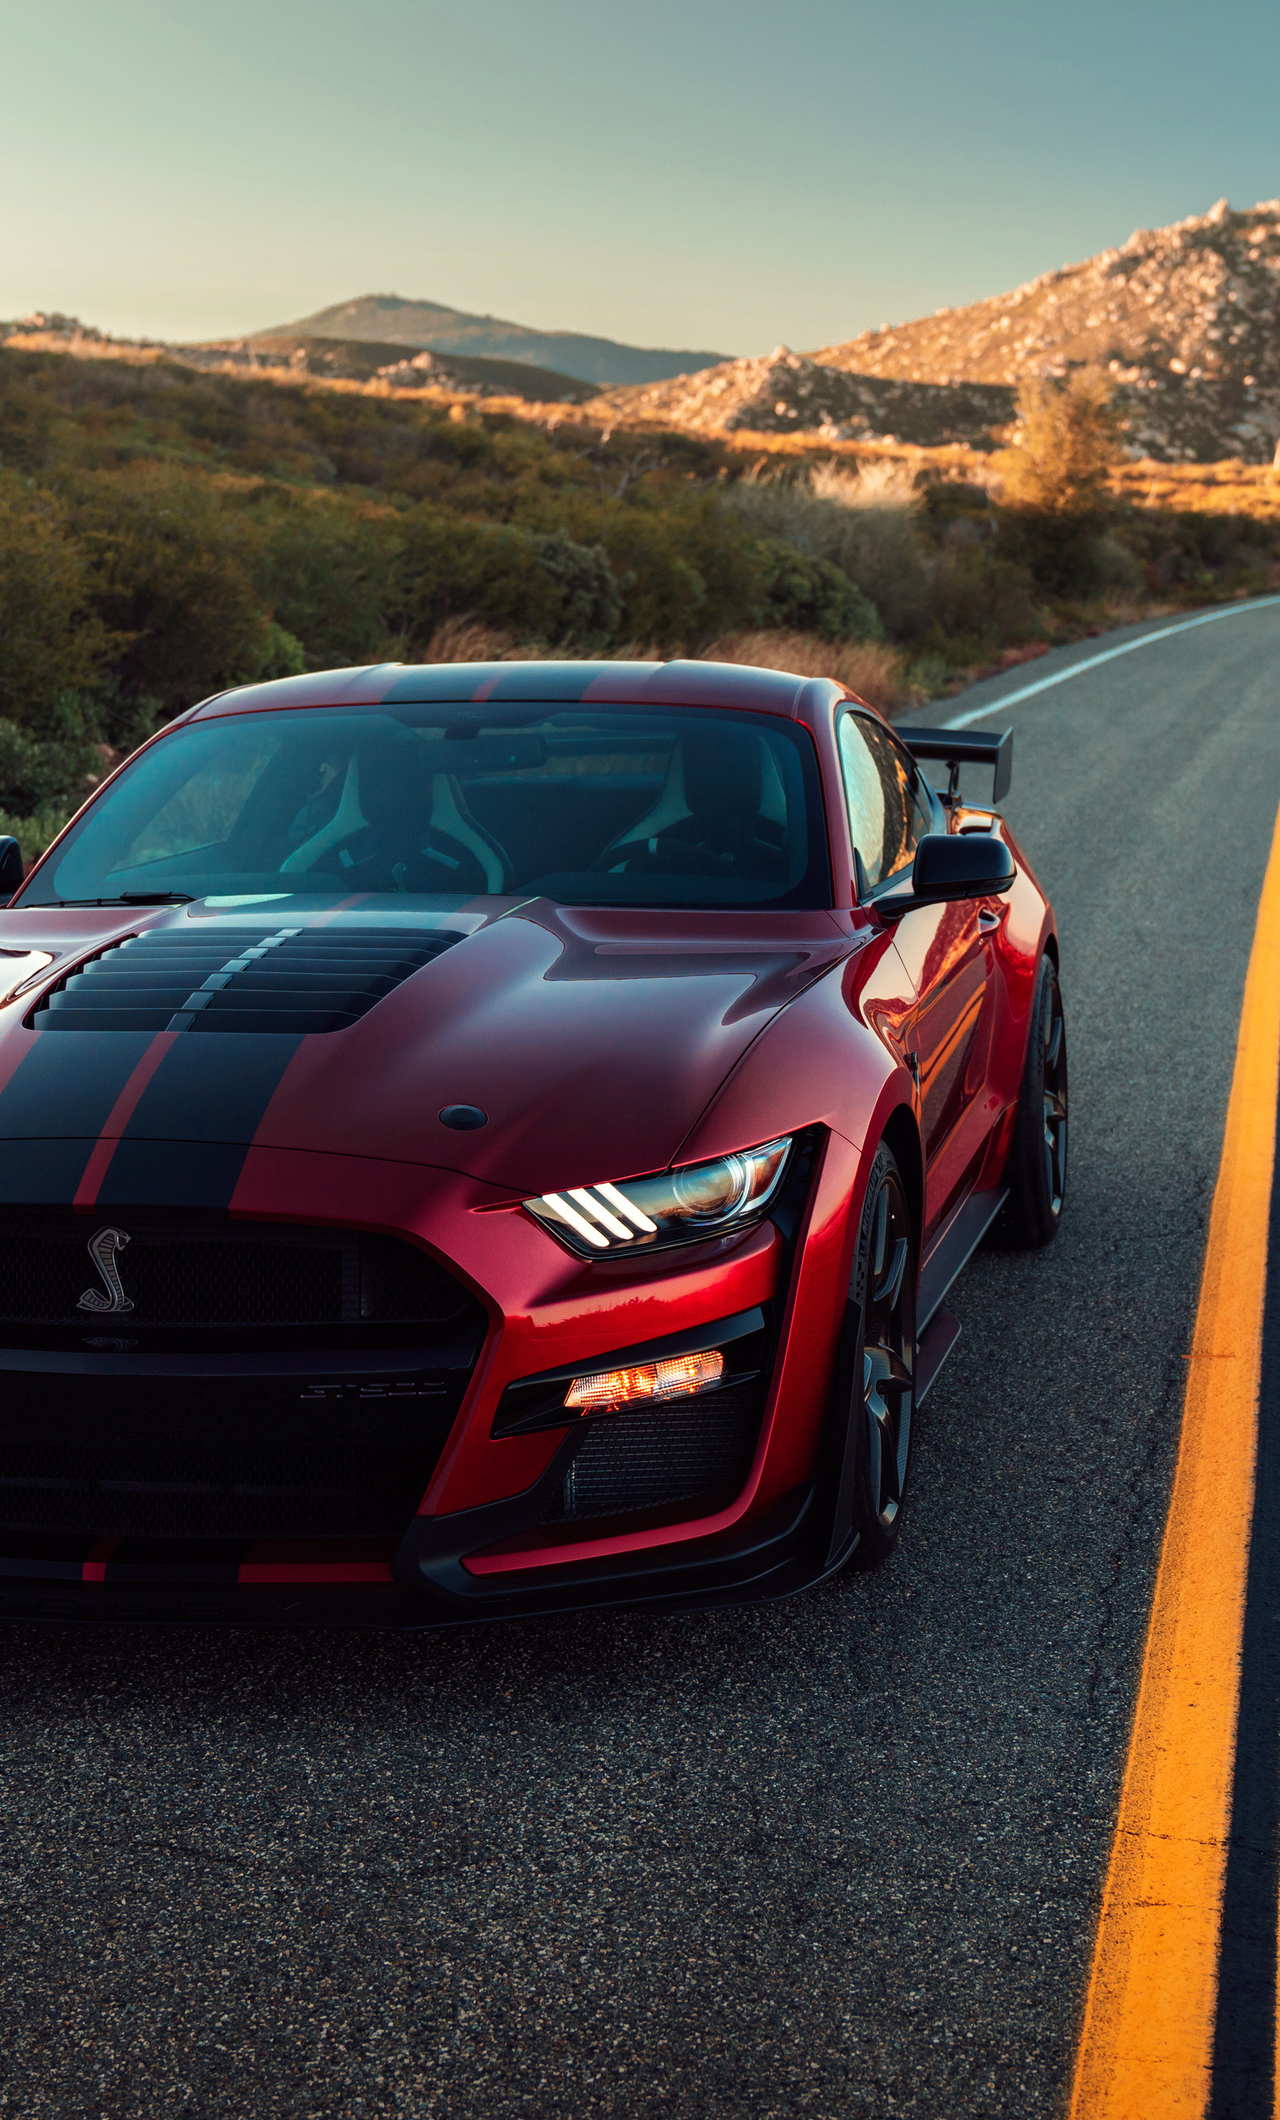 2020 Ford Mustang Shelby Gt500 4k Ford Shelby Gt500 2019